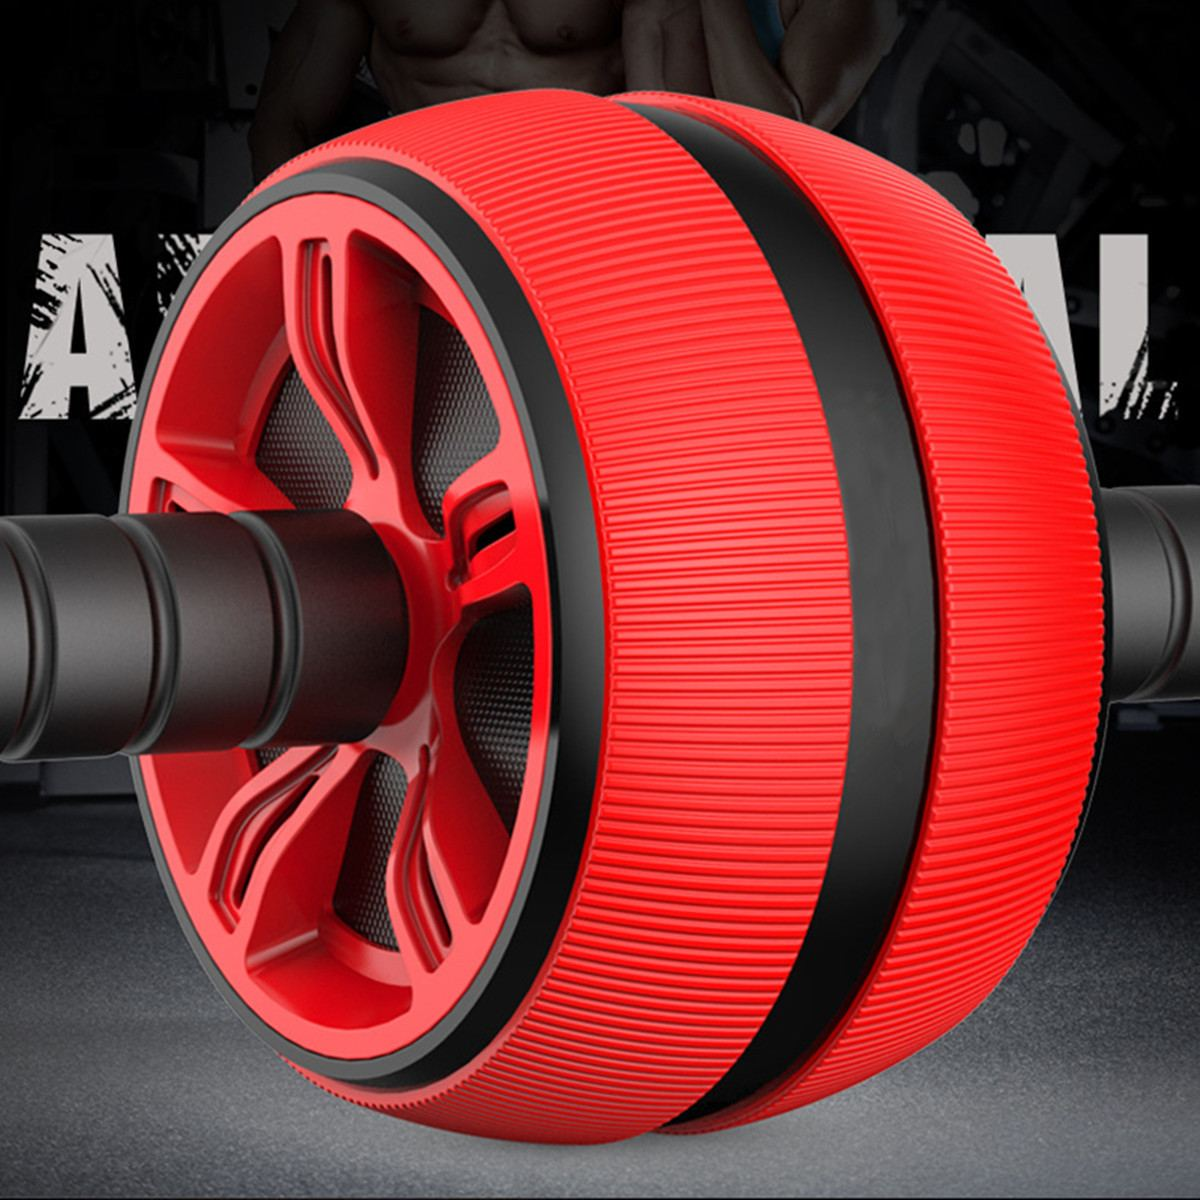 Abs Roller with Strong Bearing Capacity Ideal for burning Extra Calories from Arms Back and Belly 5